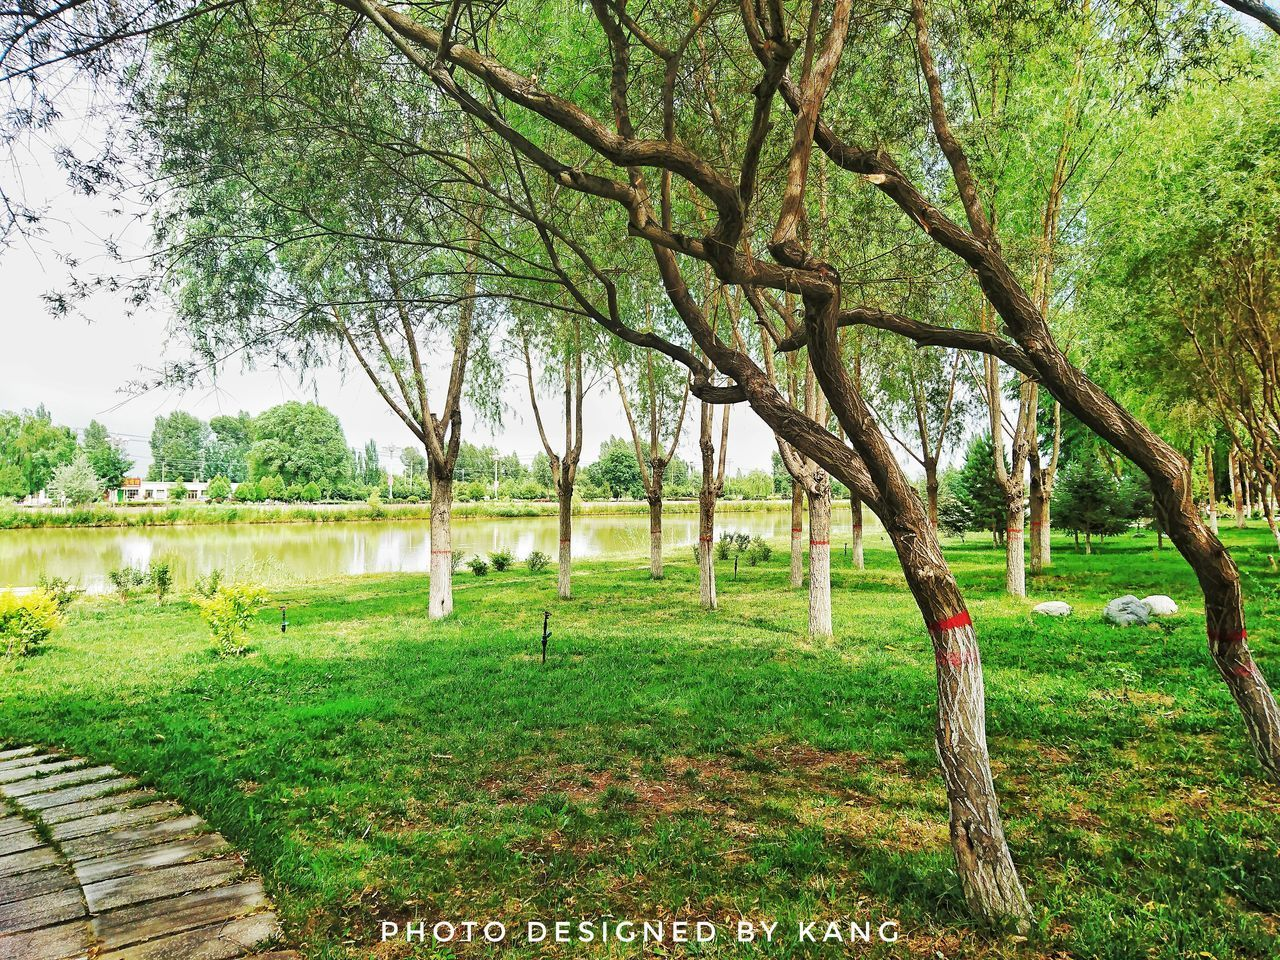 tree, tree trunk, growth, grass, green color, nature, beauty in nature, tranquility, tranquil scene, branch, outdoors, day, scenics, no people, landscape, park - man made space, bare tree, water, sky